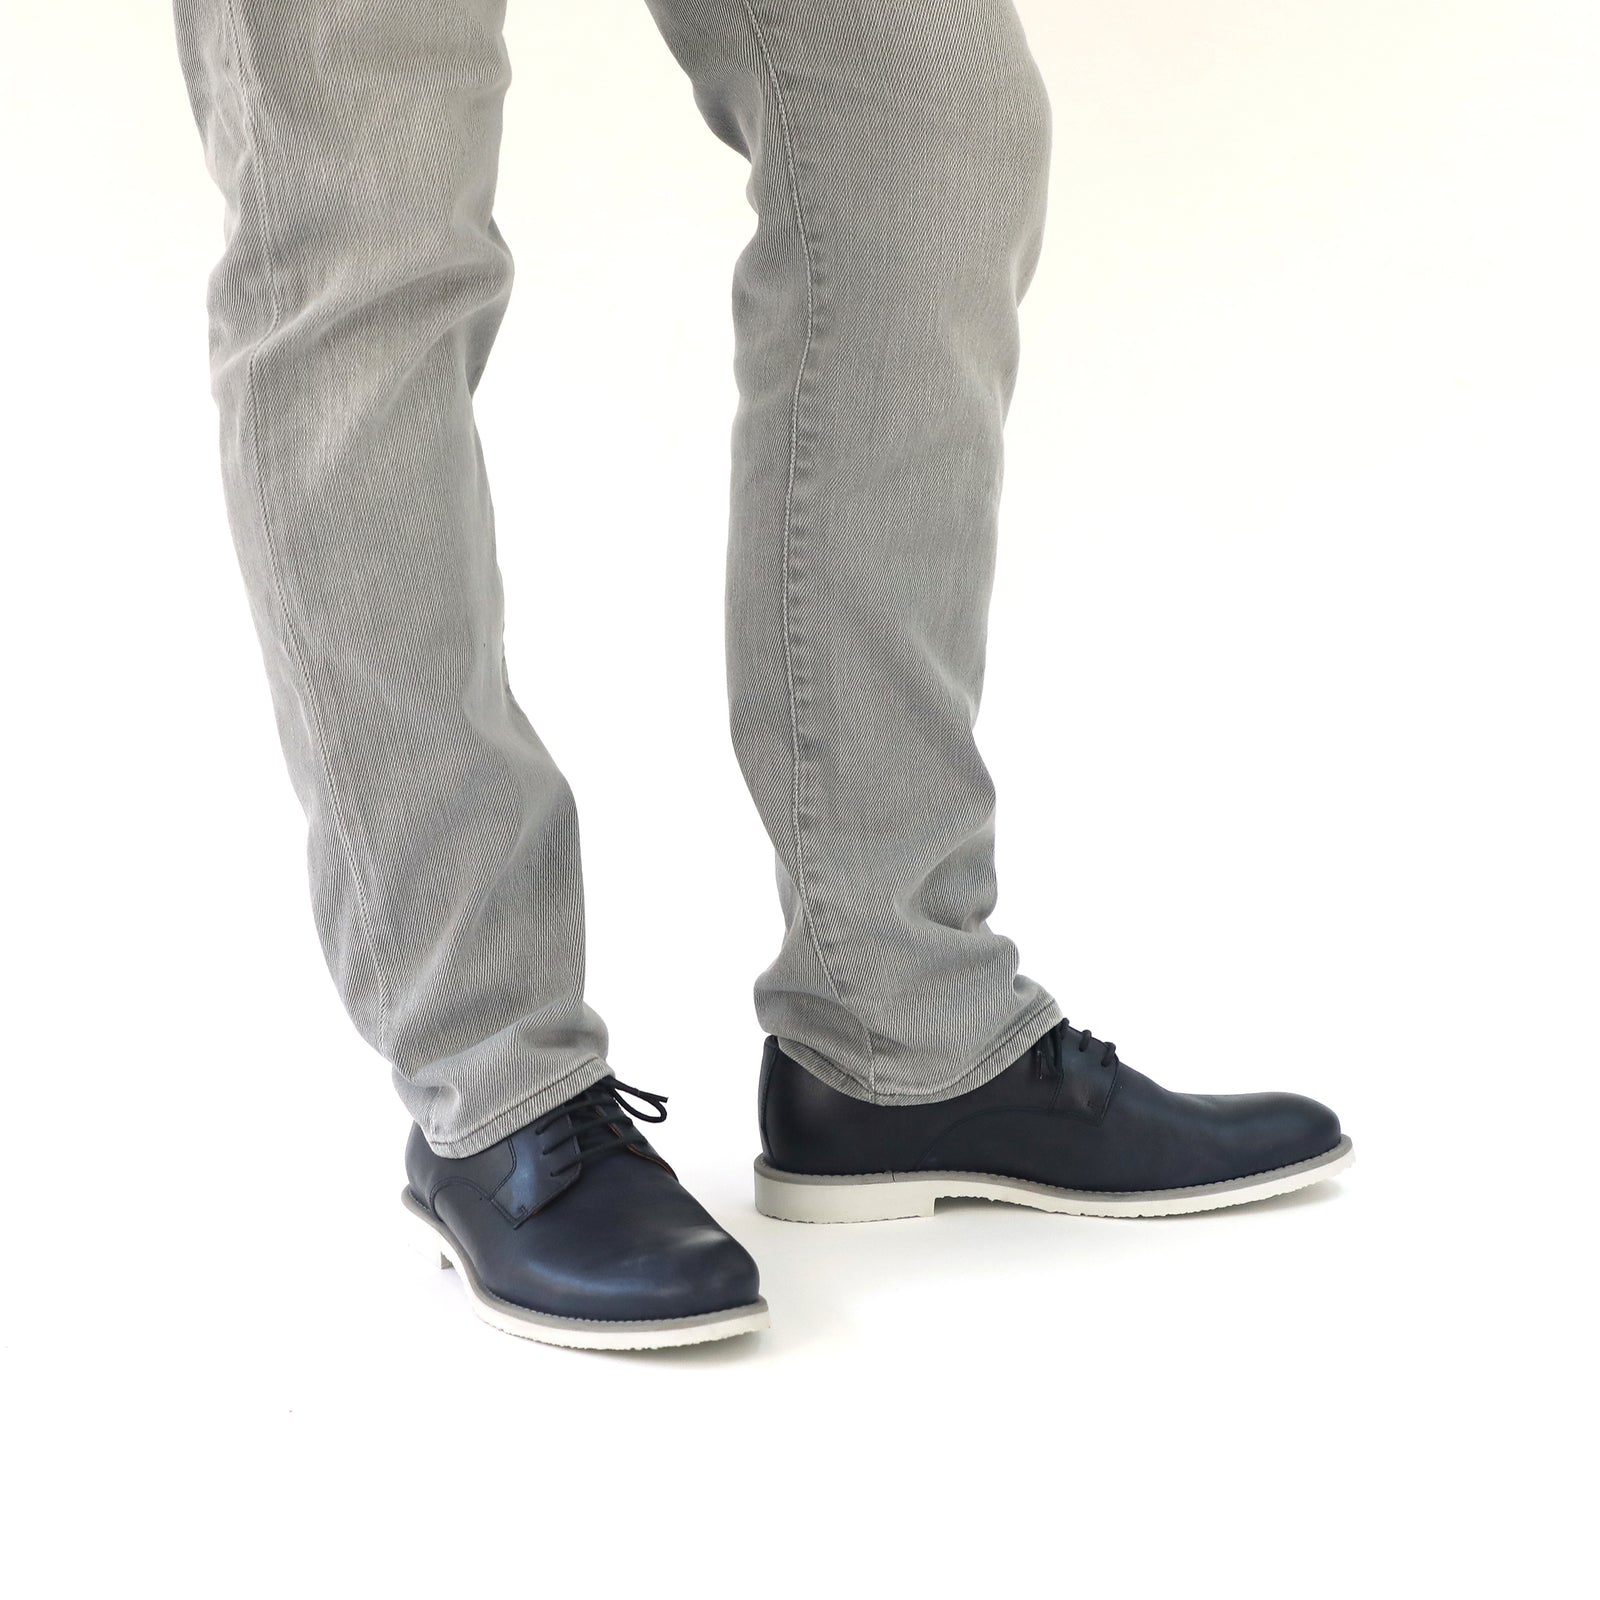 Drixo Navy Leather